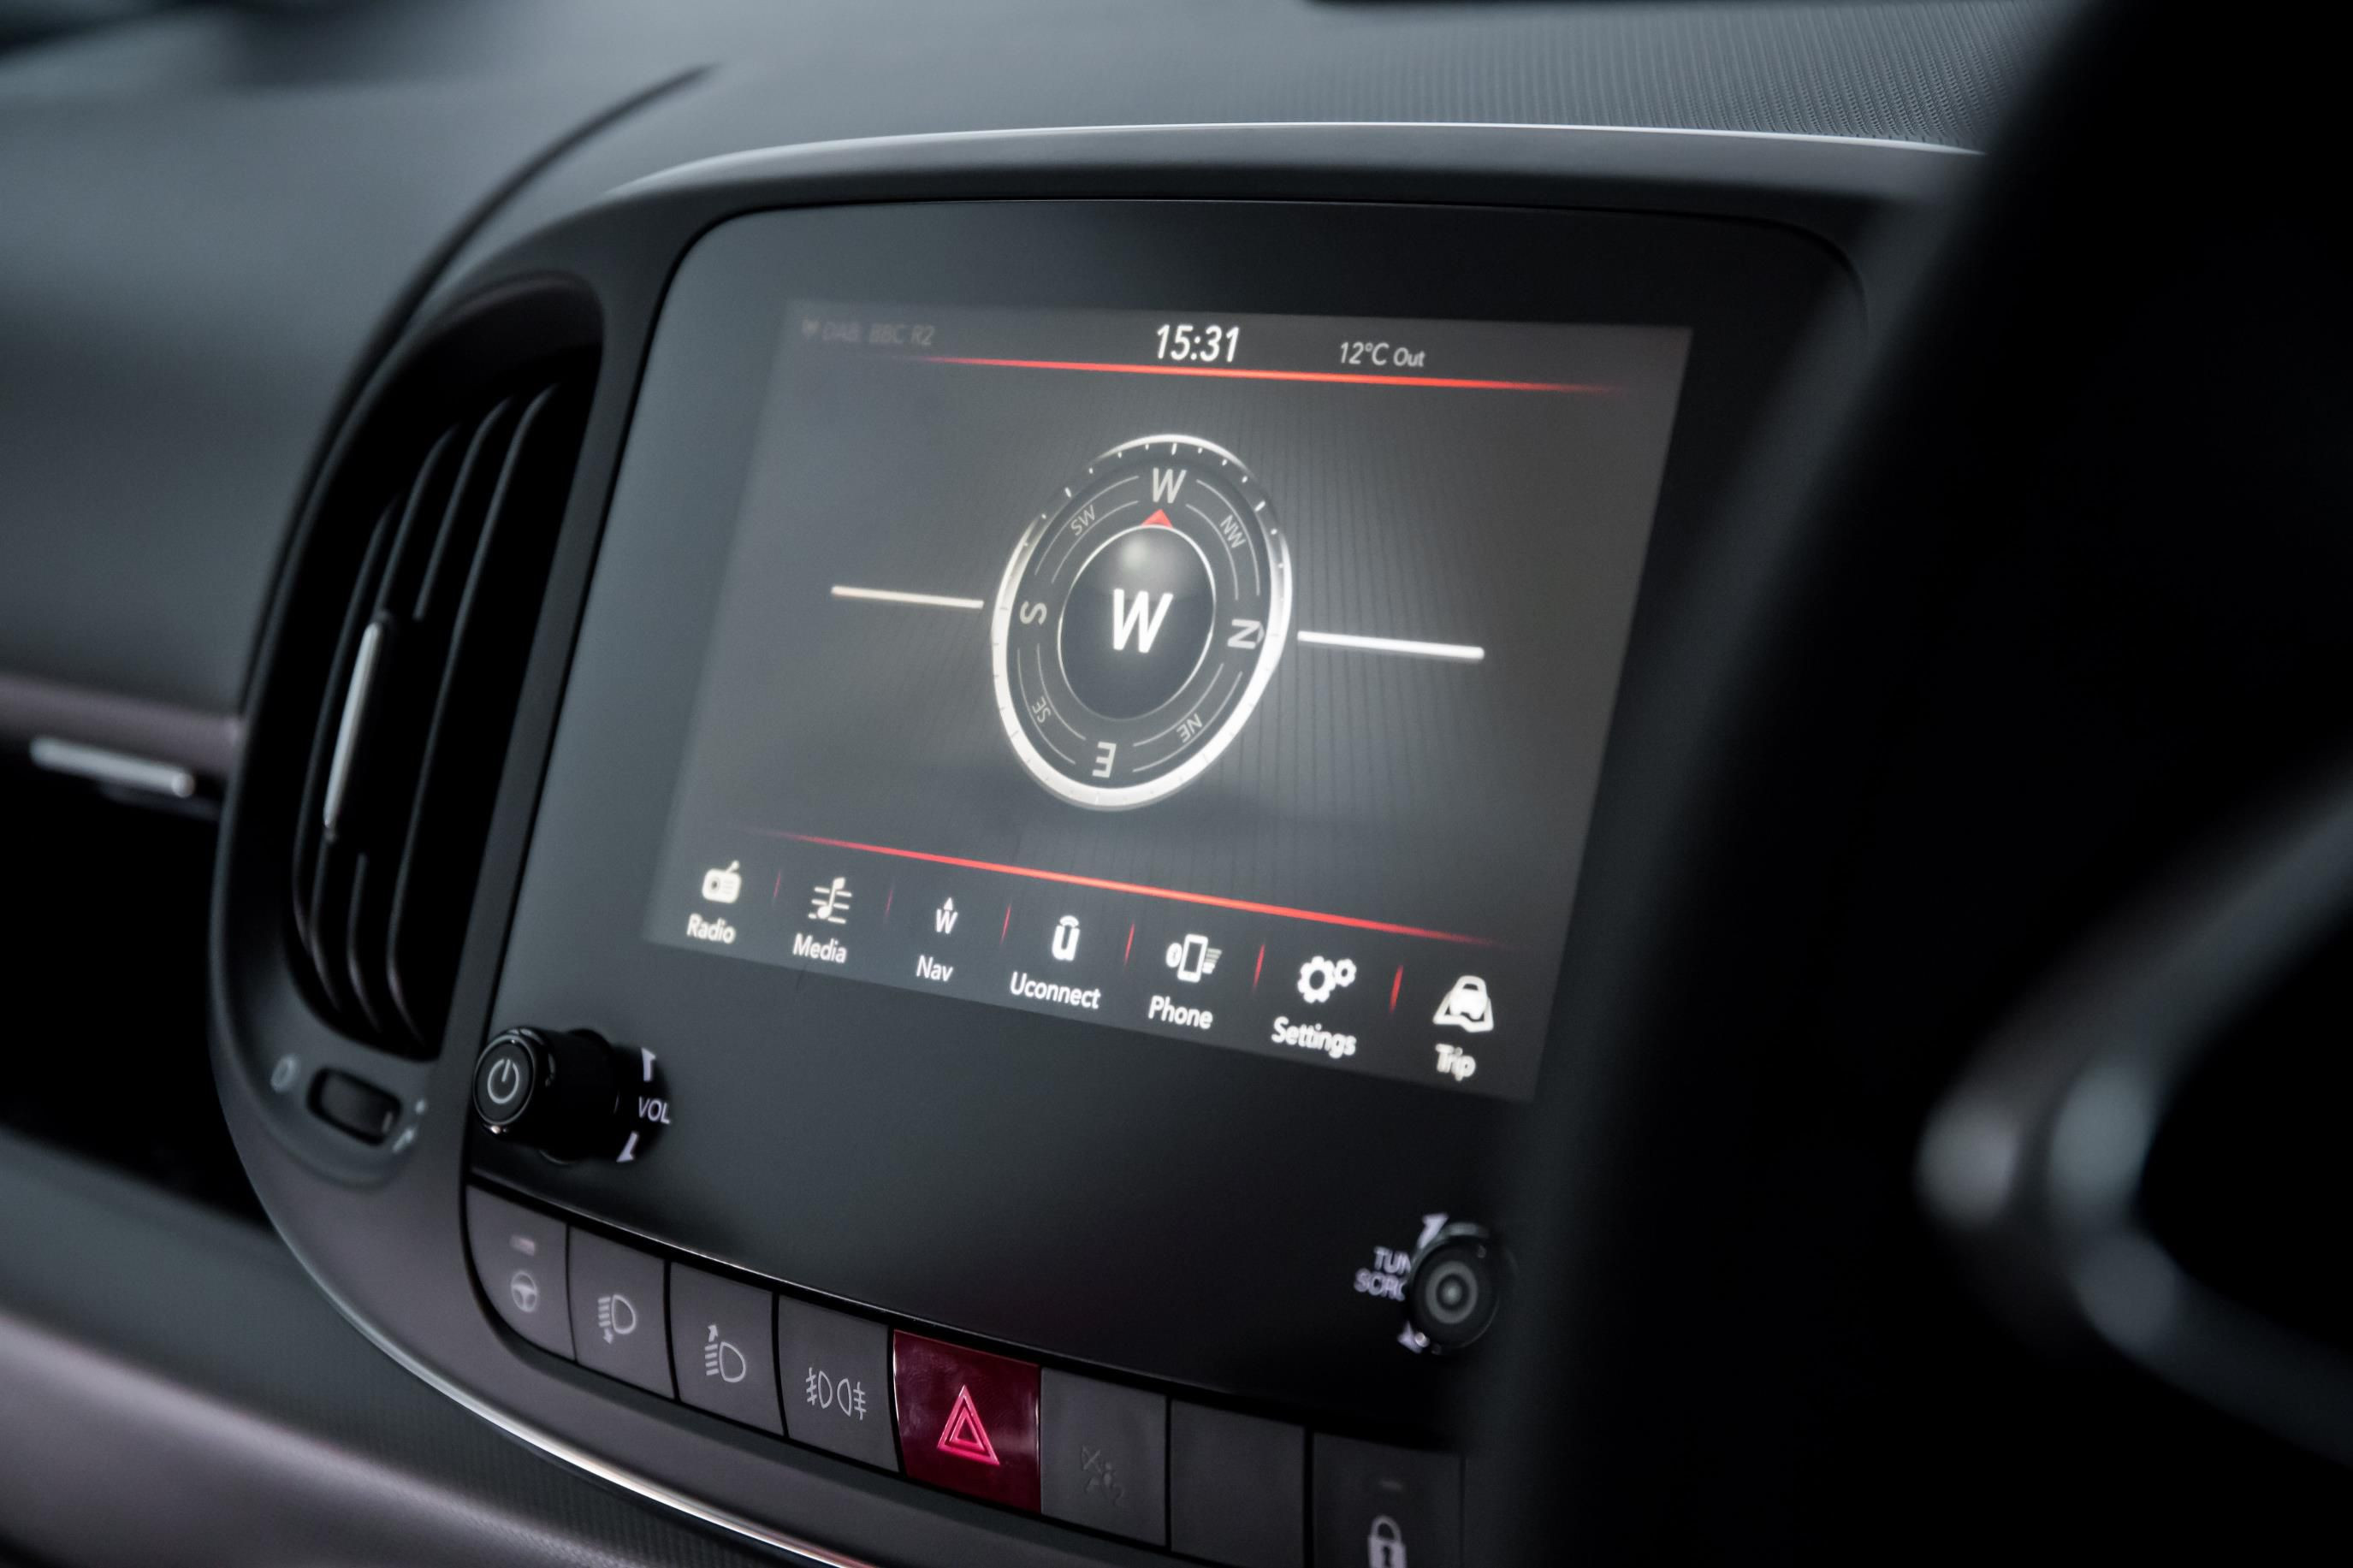 Fiat Uconnect touchscreen in a Fiat 500l